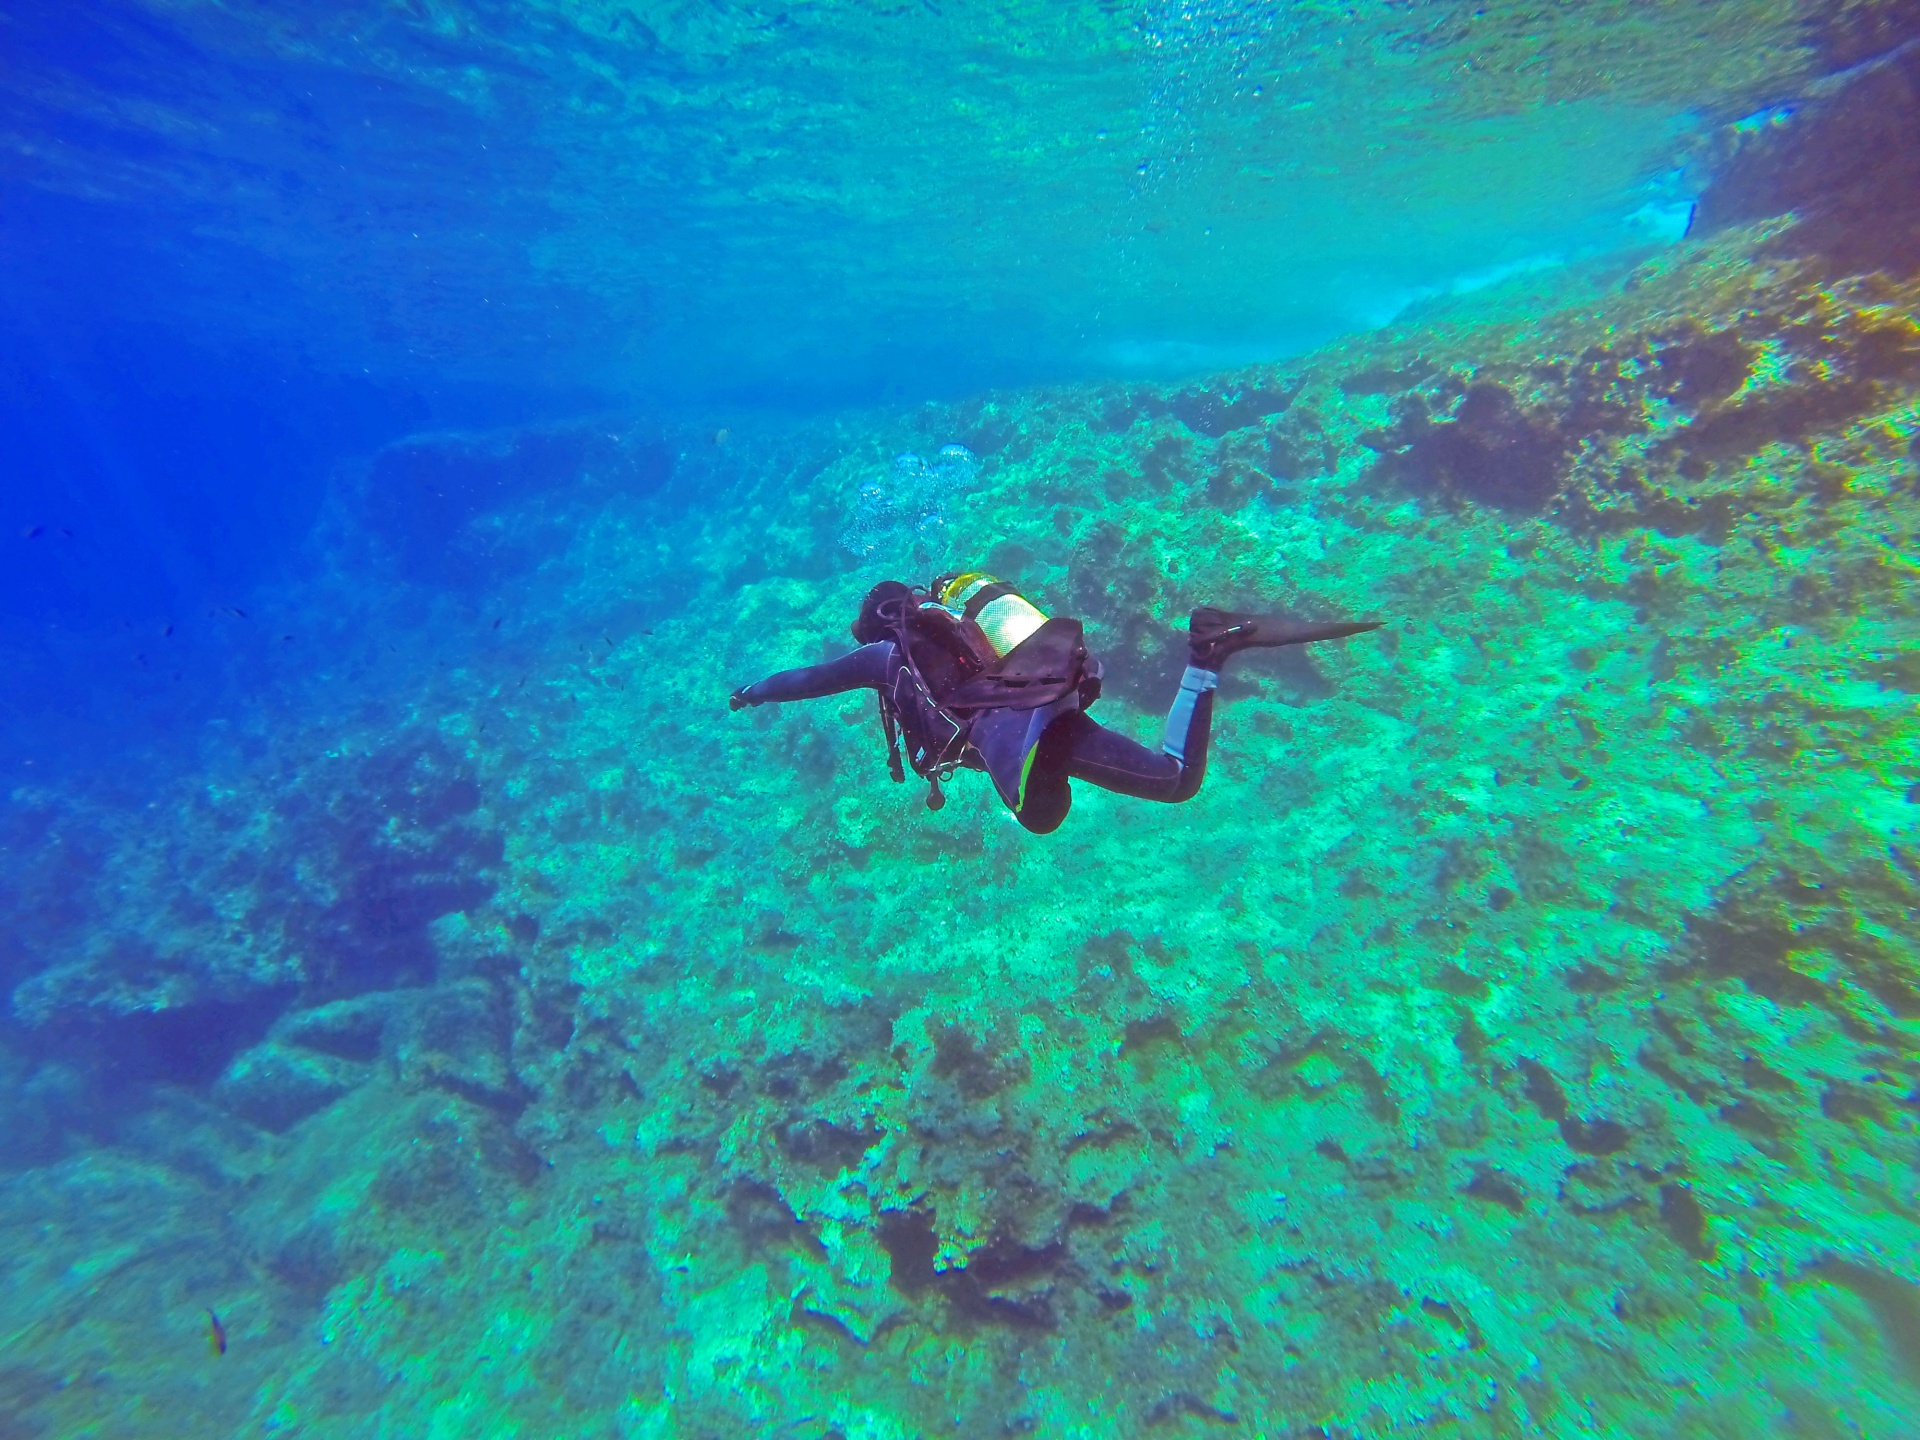 A scuba diver swimming in blue-green water over a coral reef